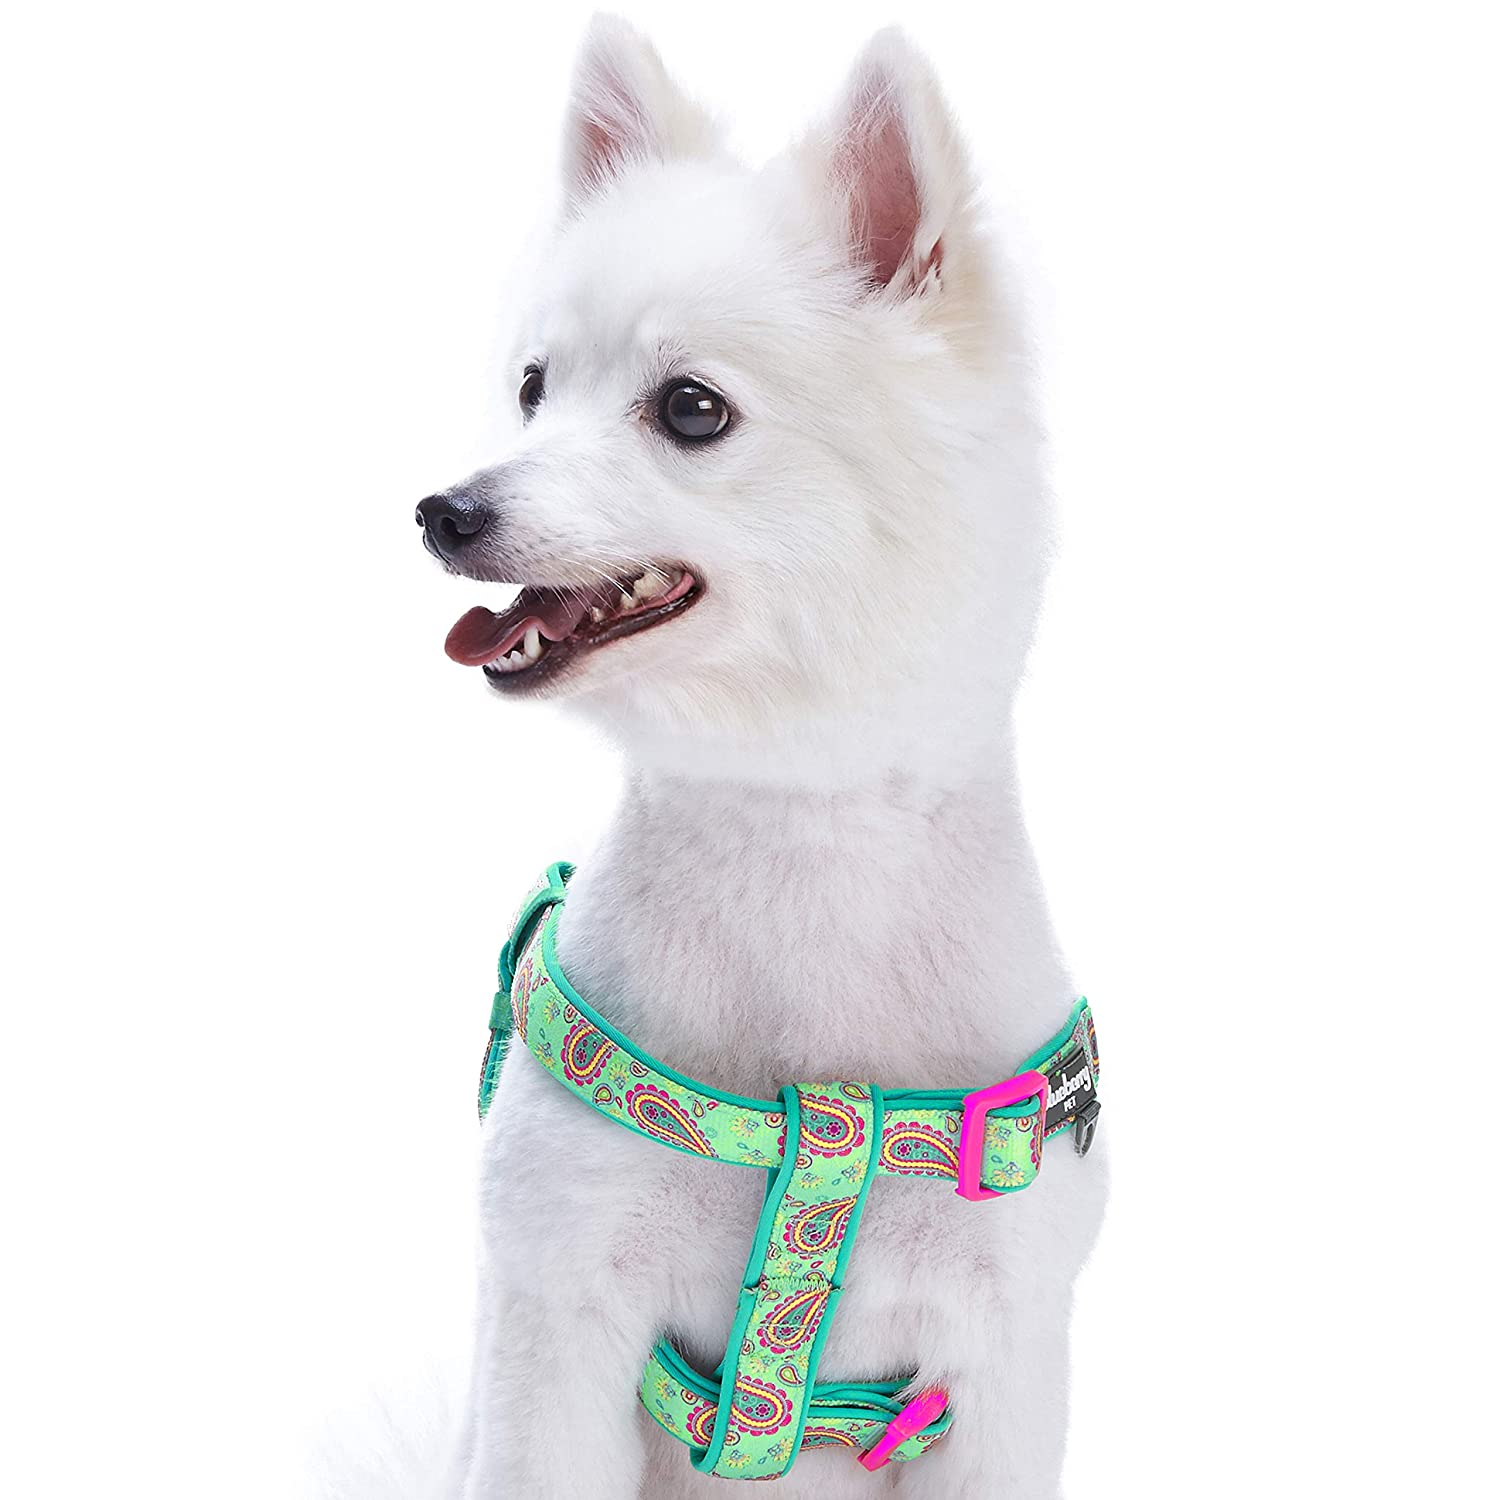 Emerald Green (16.5\ Emerald Green (16.5\ blueeberry Pet 5 colors Soft & Comfy Step-in Paisley Flower Print Dog Harness, Chest Girth 16.5  21.5 , Emerald Green, Small, Adjustable Harnesses for Dogs